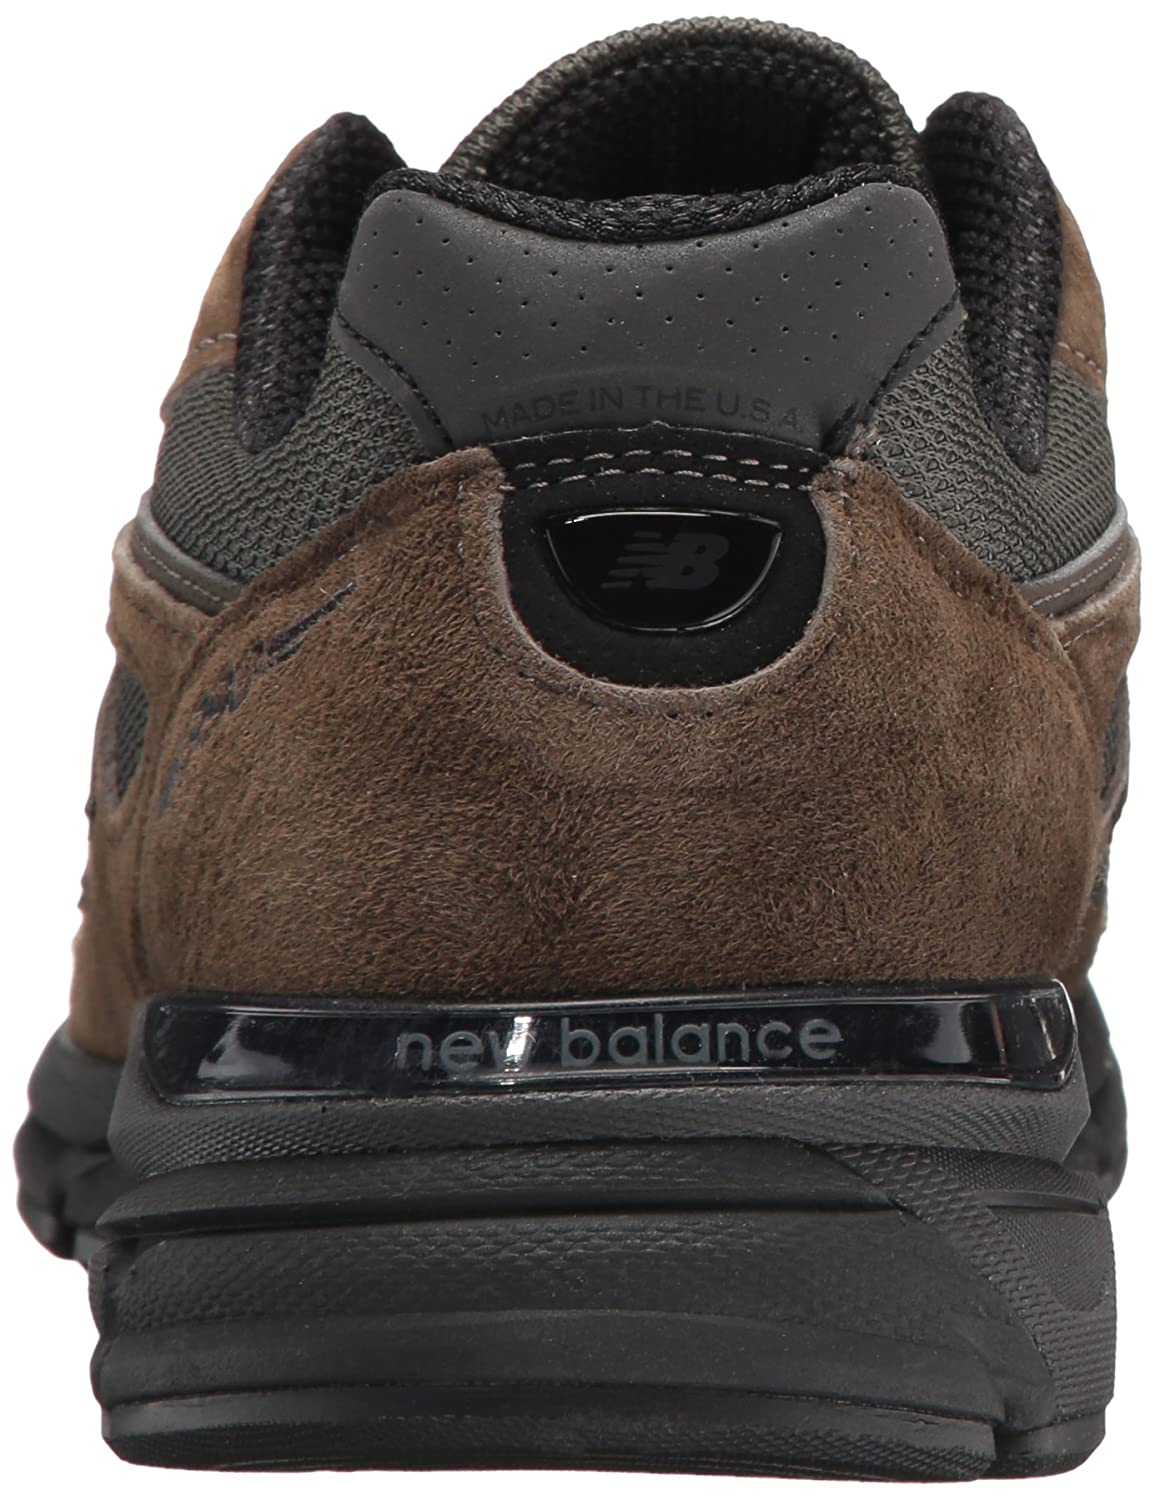 New-Balance-990-990v4-Classicc-Retro-Fashion-Sneaker-Made-in-USA thumbnail 49